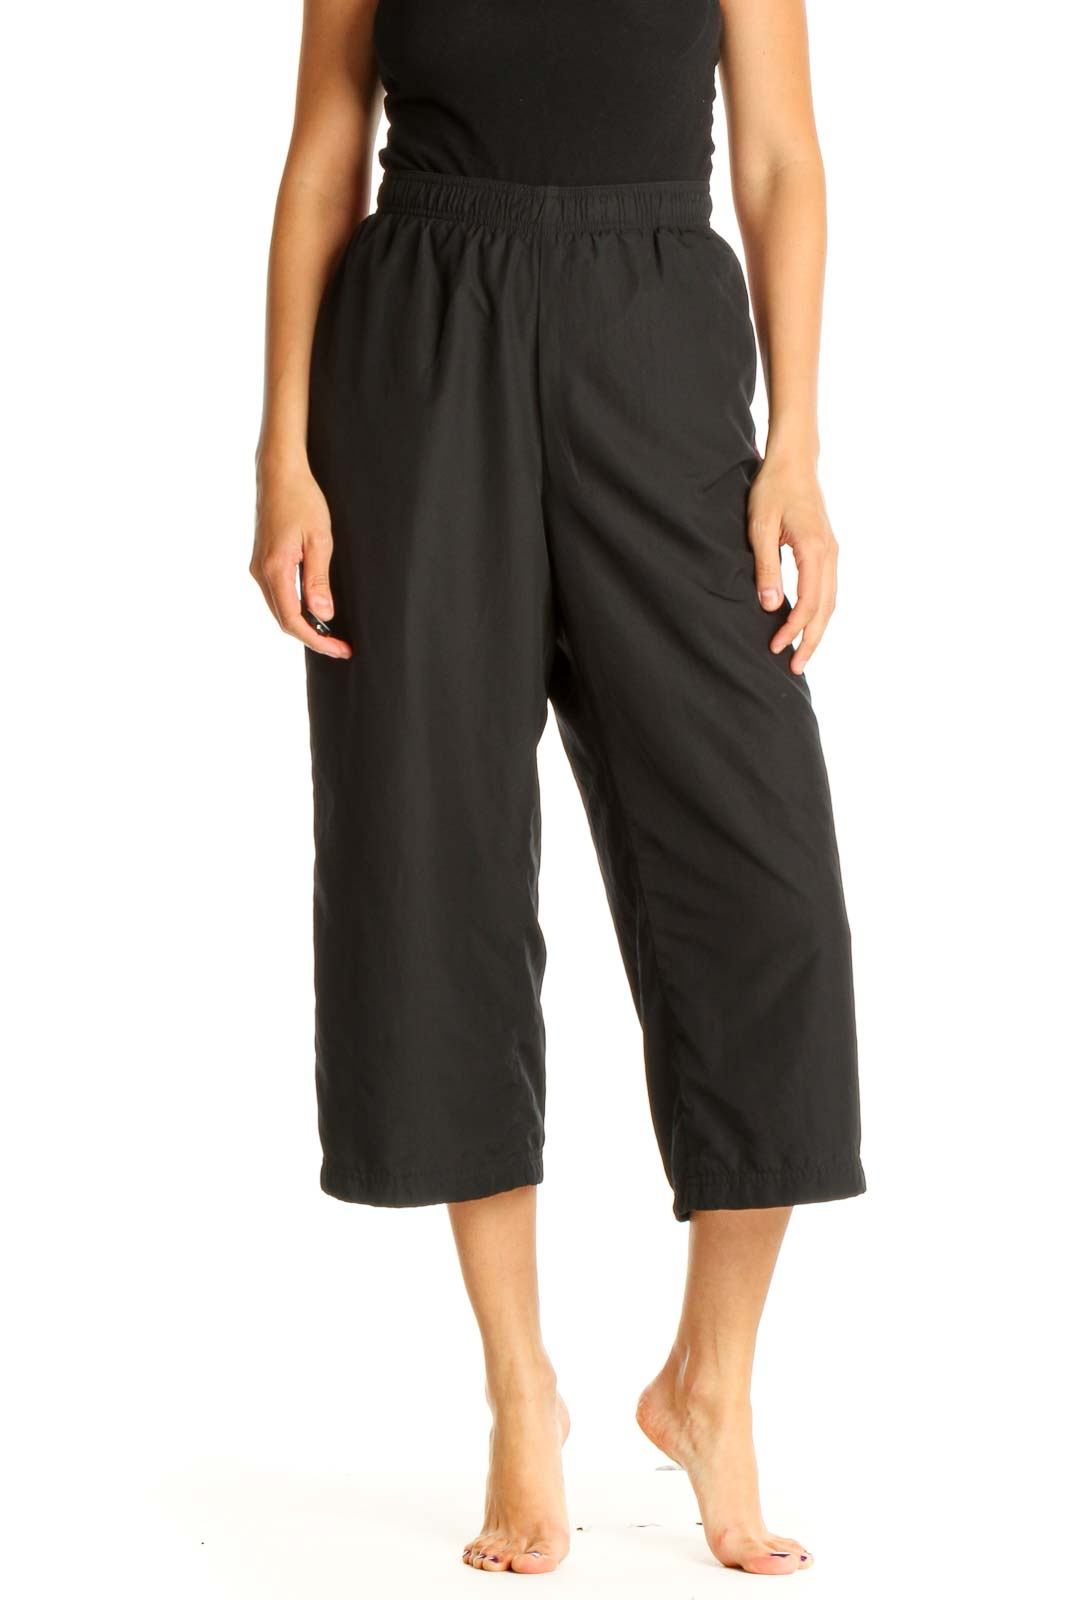 Black Solid Casual Activewear Pants Front